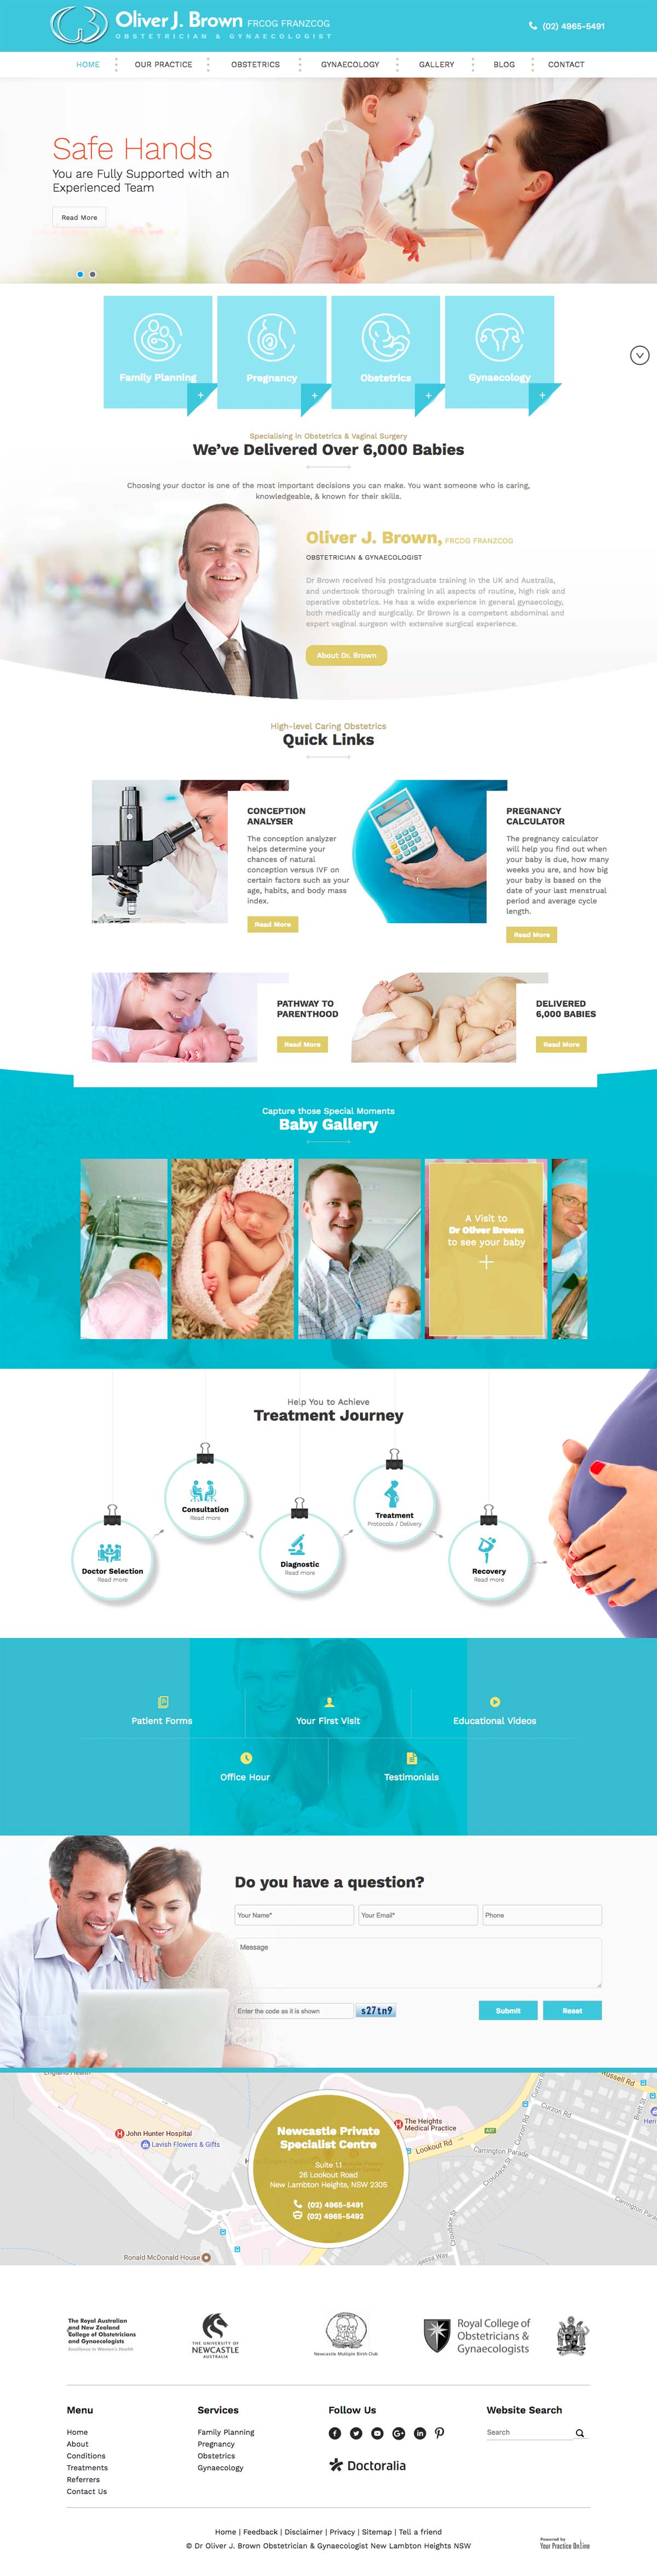 Website for Obstetrician & Gynaecologist